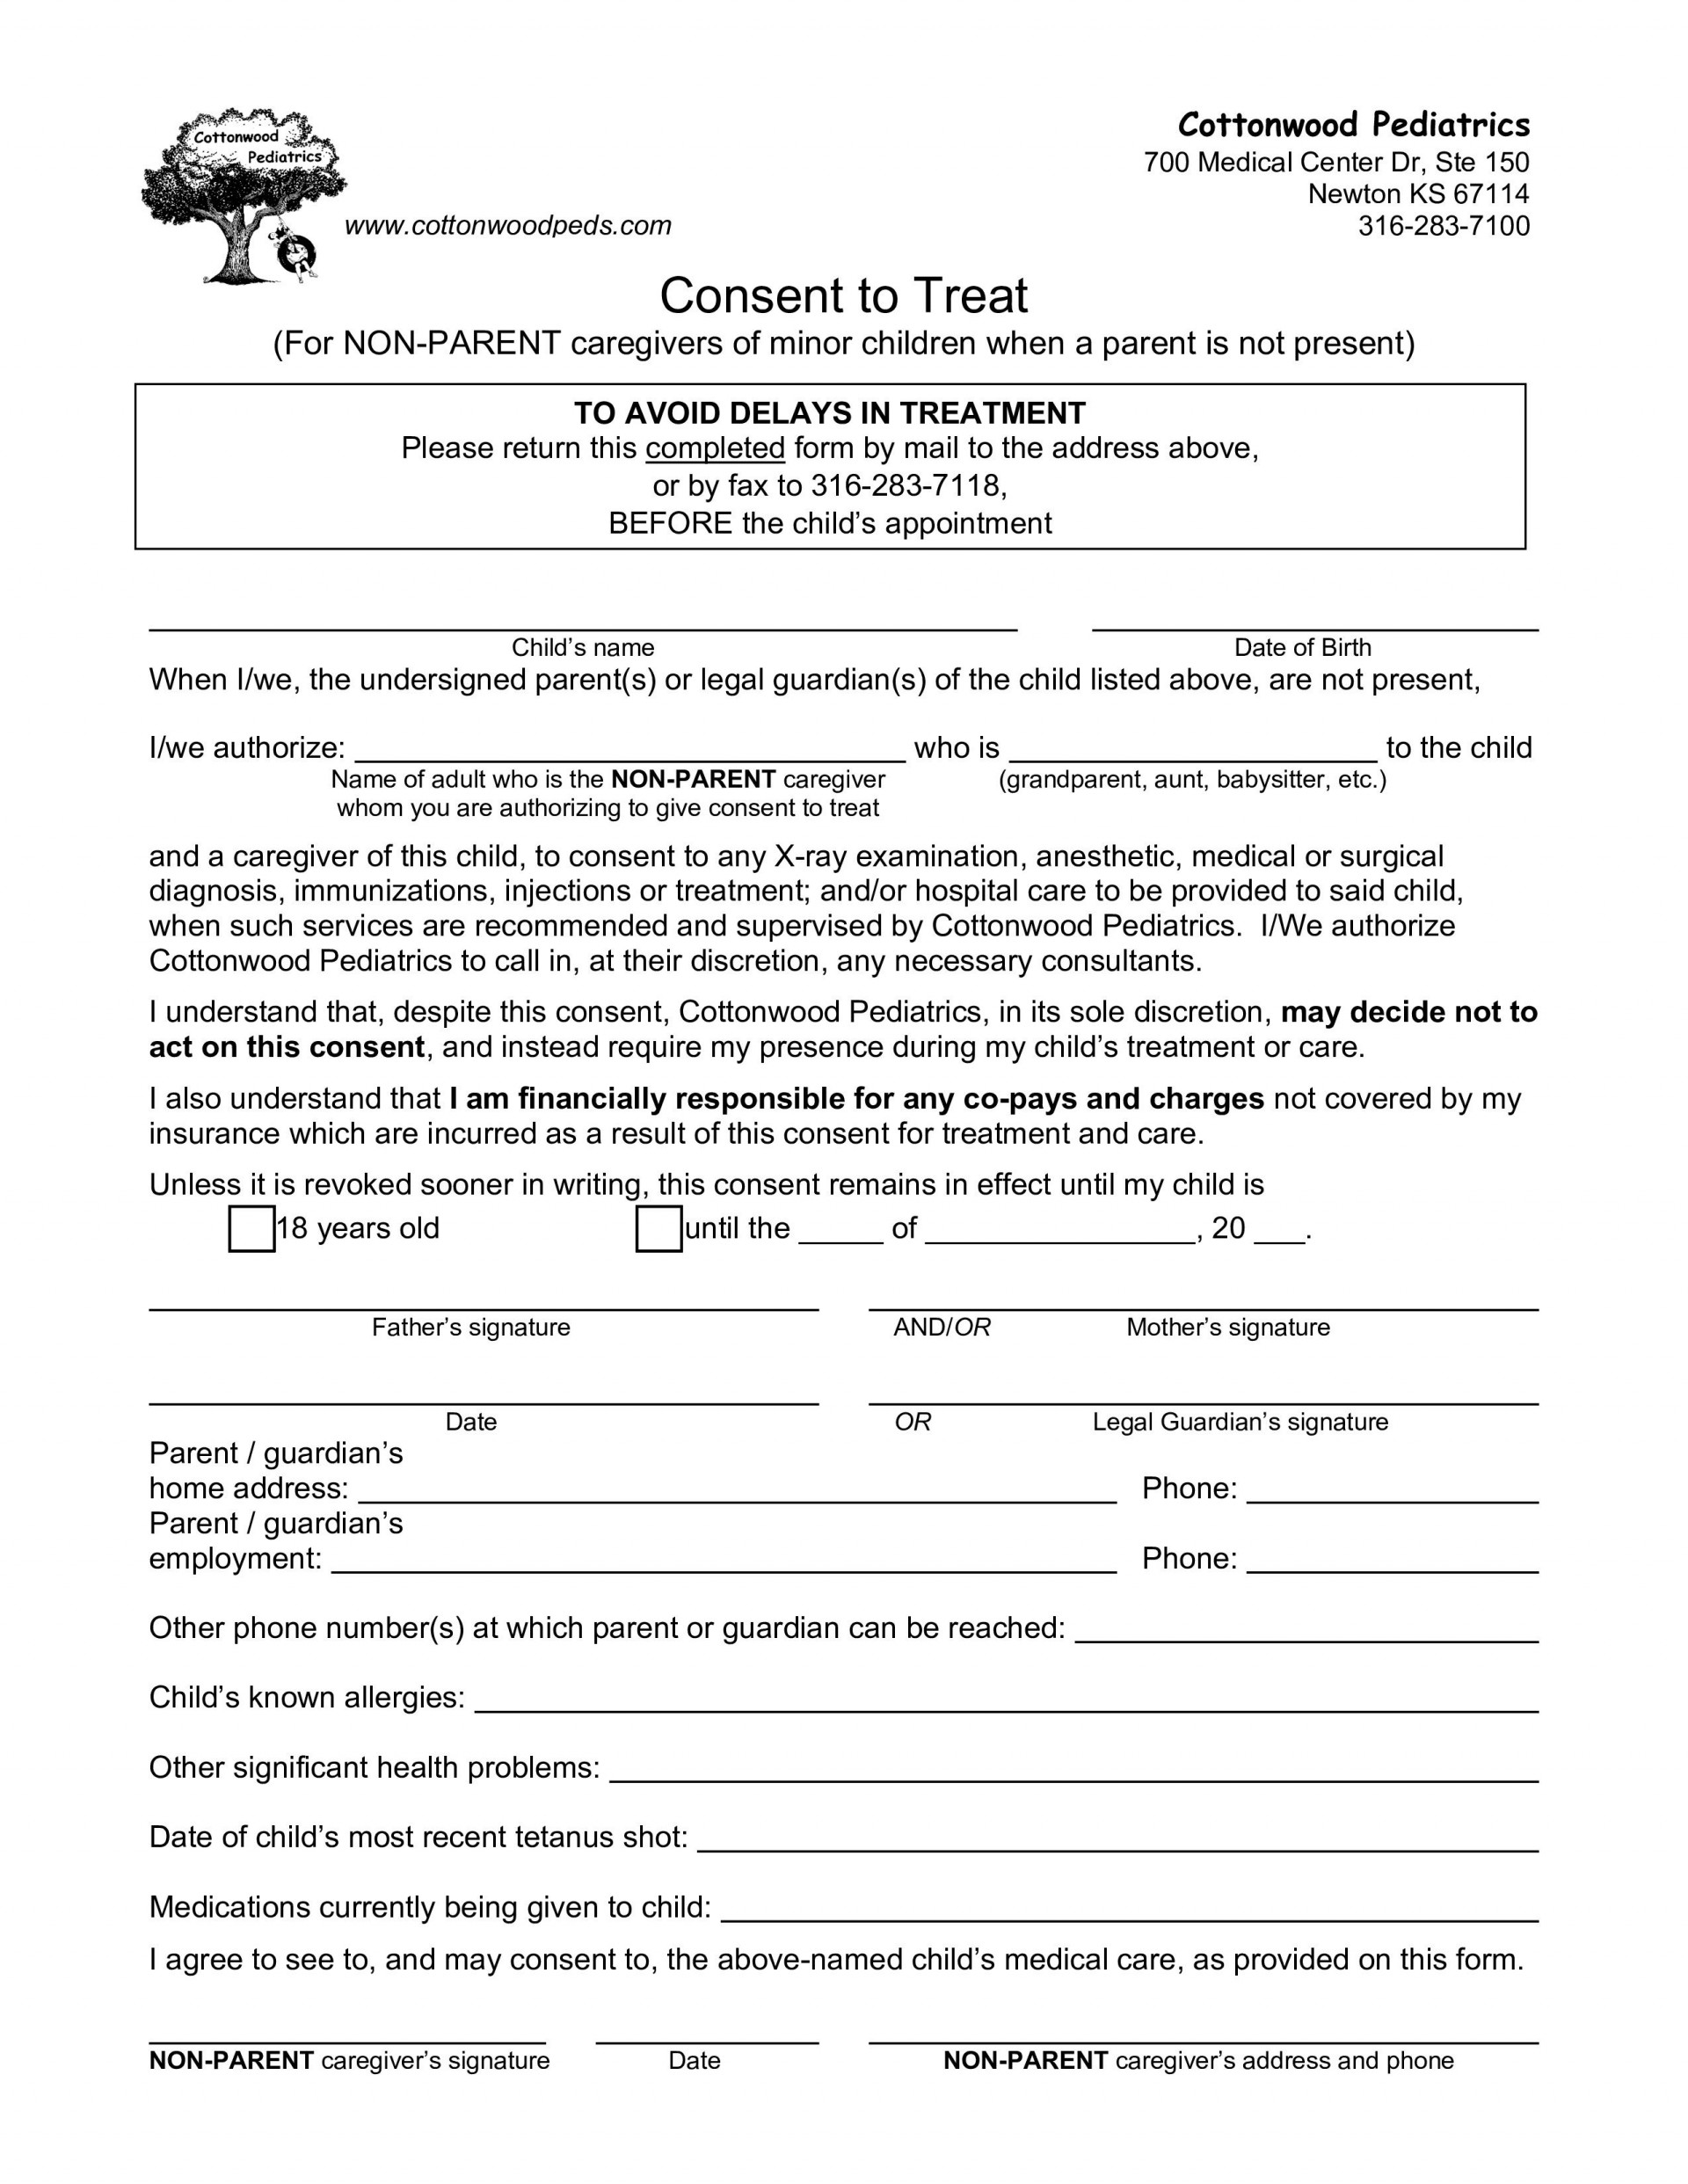 002 Surprising Medical Consent Form Template Idea  Templates Free1920